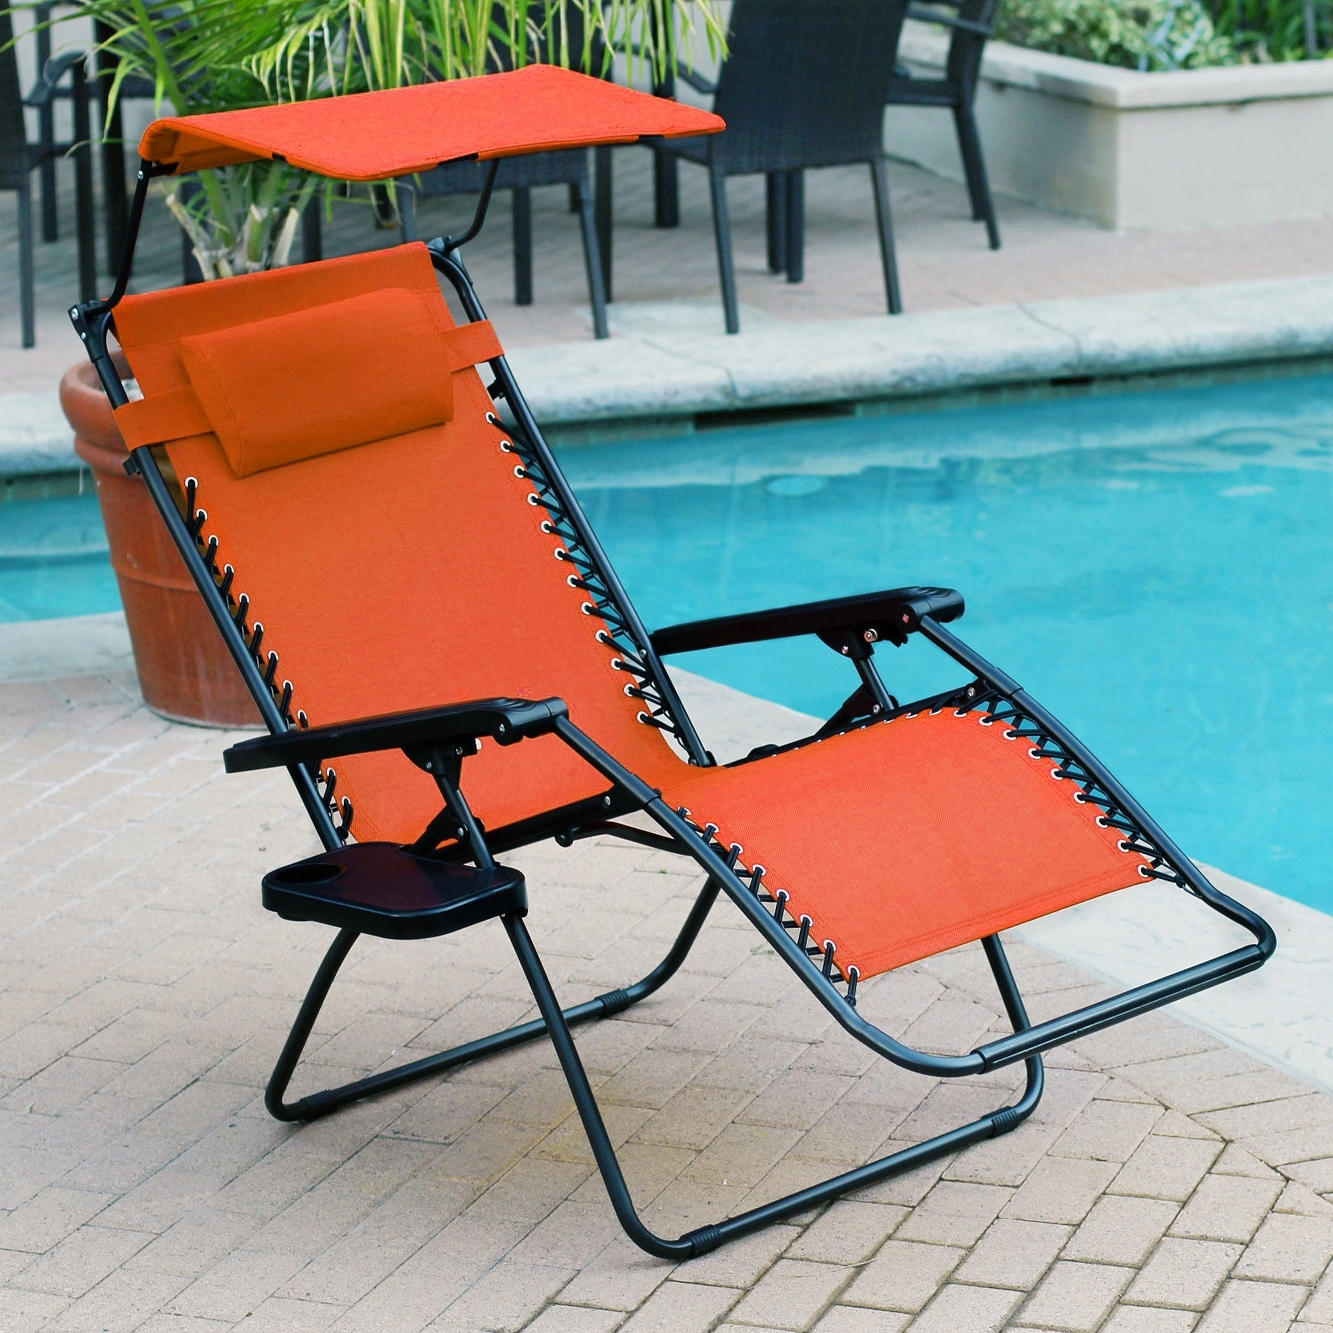 Zero Gravity Chaise Lounge Chairs Intended For Trendy 4 Best Zero Gravity Chairs On The Market (2018 Reviews & Guide) (View 12 of 15)